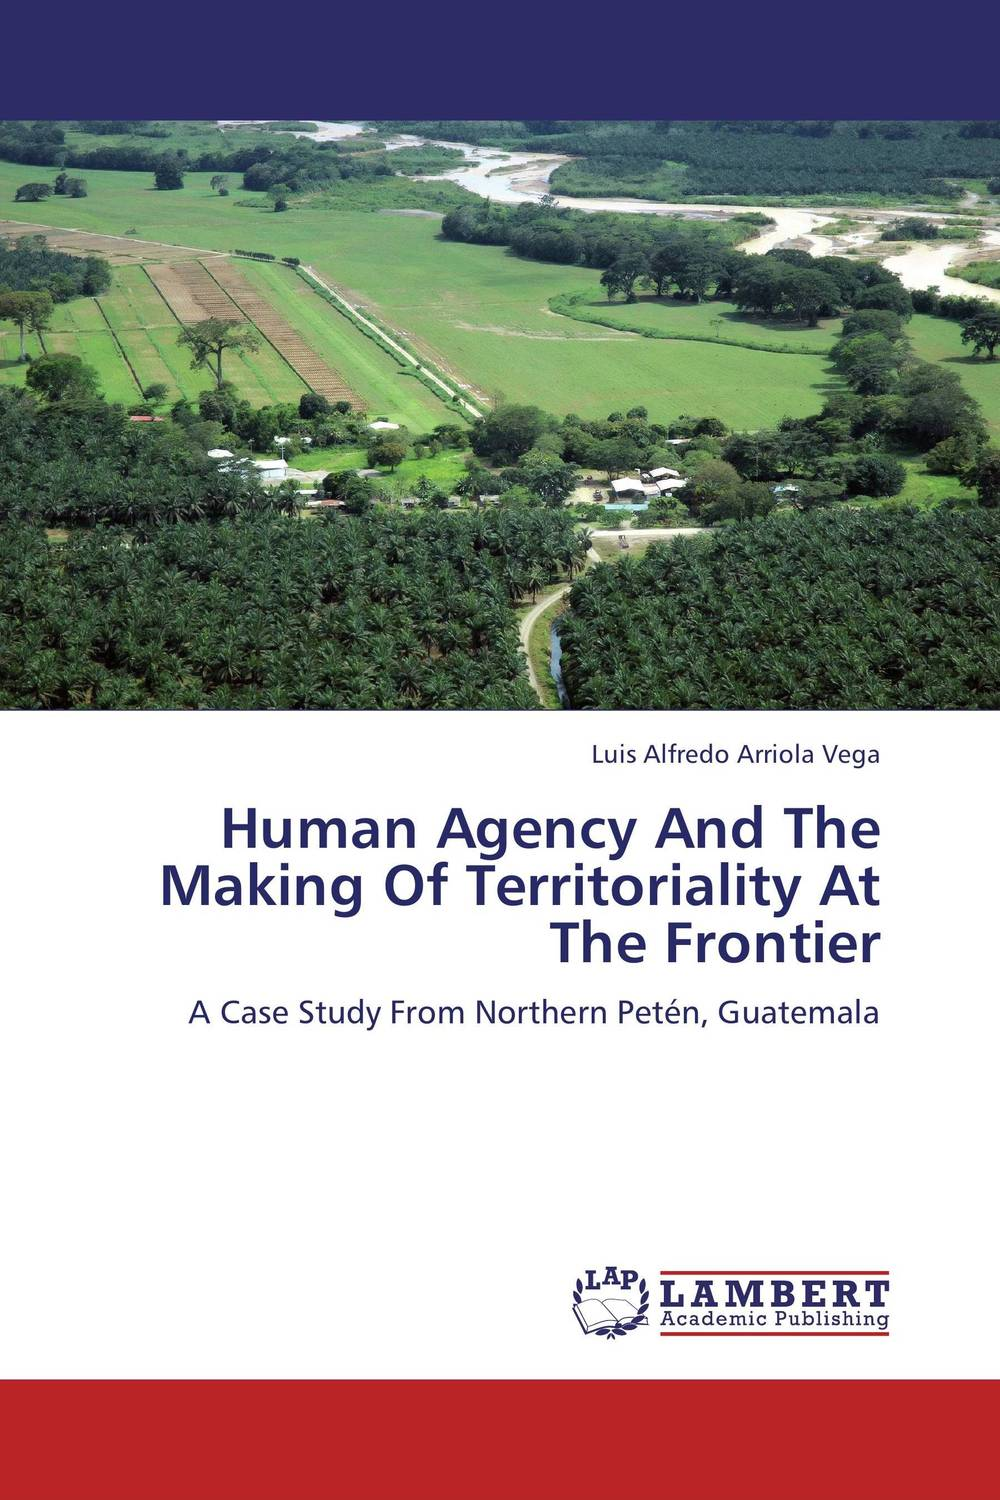 Human Agency And The Making Of Territoriality At The Frontier